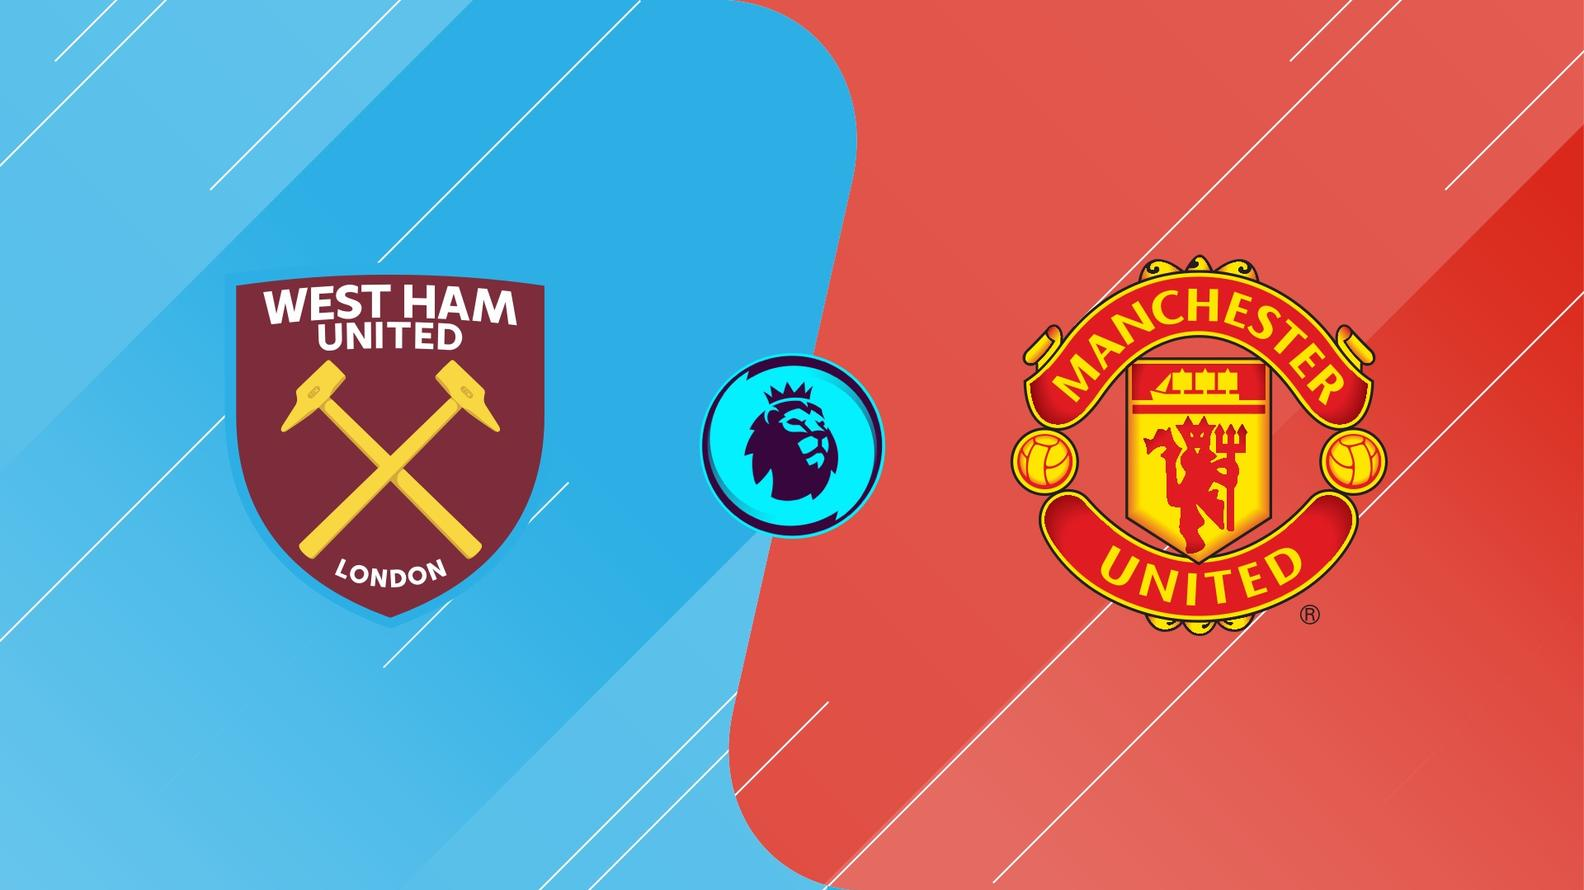 West Ham vs. Manchester United live stream, lineups, TV channels